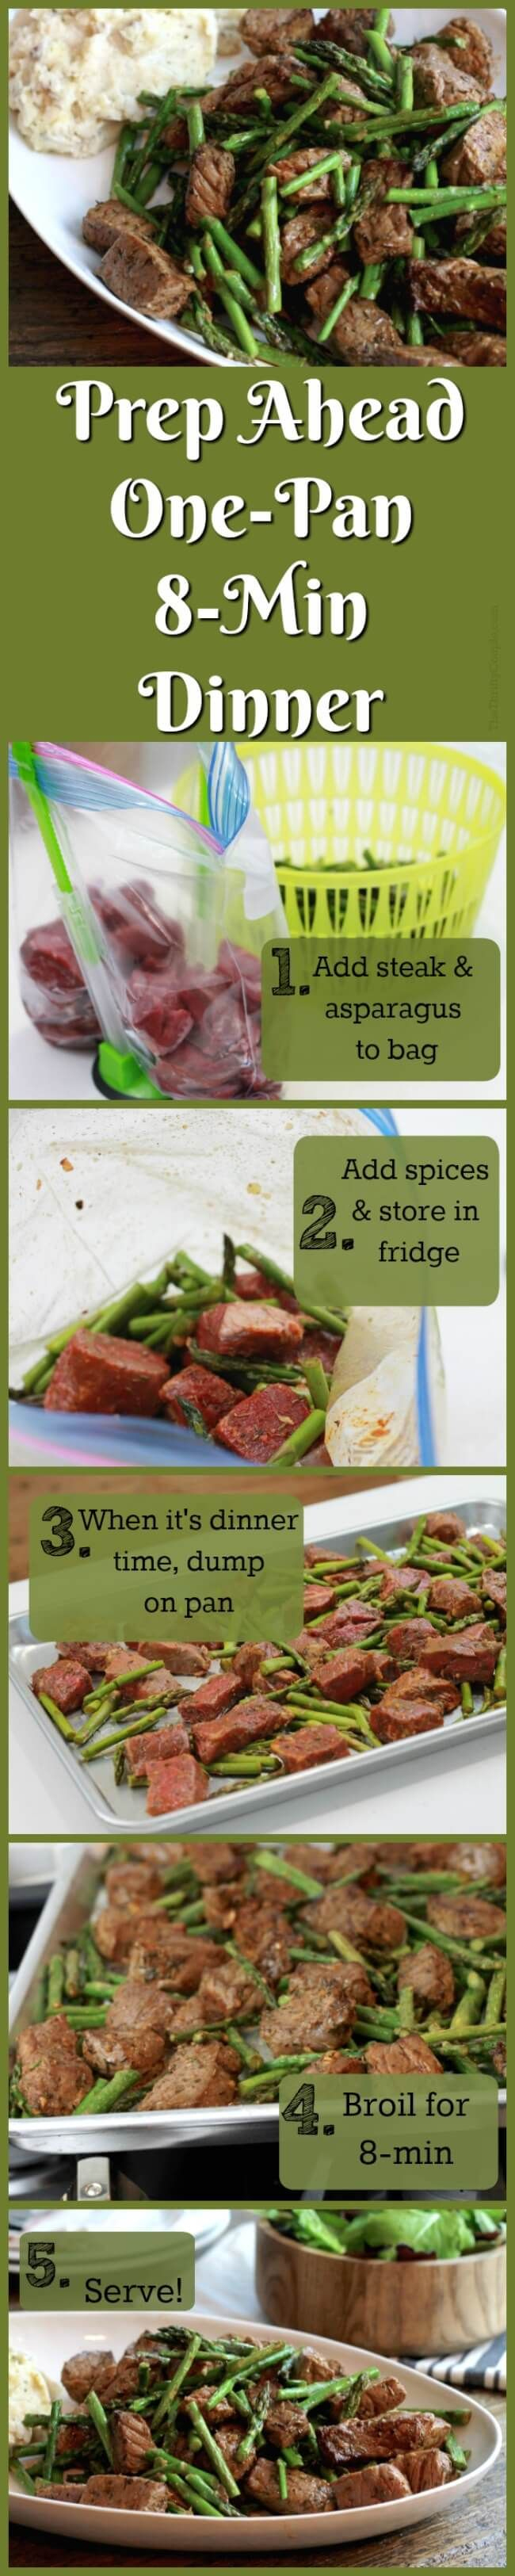 Spicy Steak Bites and Asparagus meal...but with a TWIST! Make ahead in less than 10-minutes. When ready for dinner, pour on the pan and broil in 8-mins! A delicious dinner in under 10-minutes! I am loving these prep-ahead, one-pan meals to make eating dinner at home fast, easy, and healthy! Plus, I love the tips on where to find the meat for less!